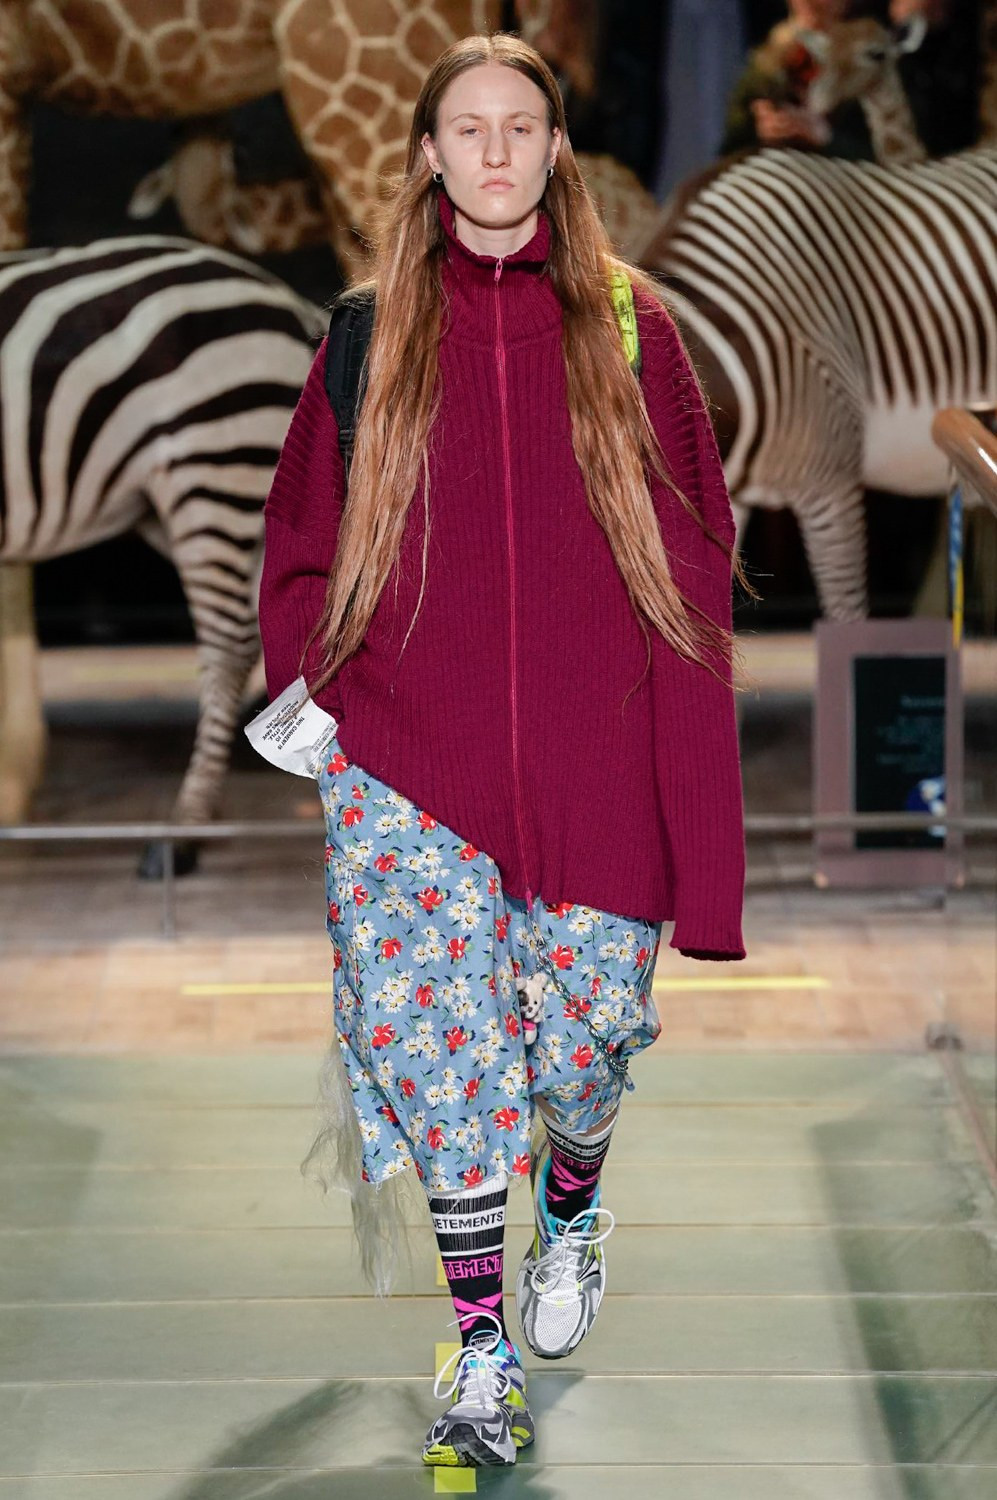 https---vetements-aw19-dtf-magazine.com-image-2019-01-vetements-fall-winter-2019-paris-fashion-week-25